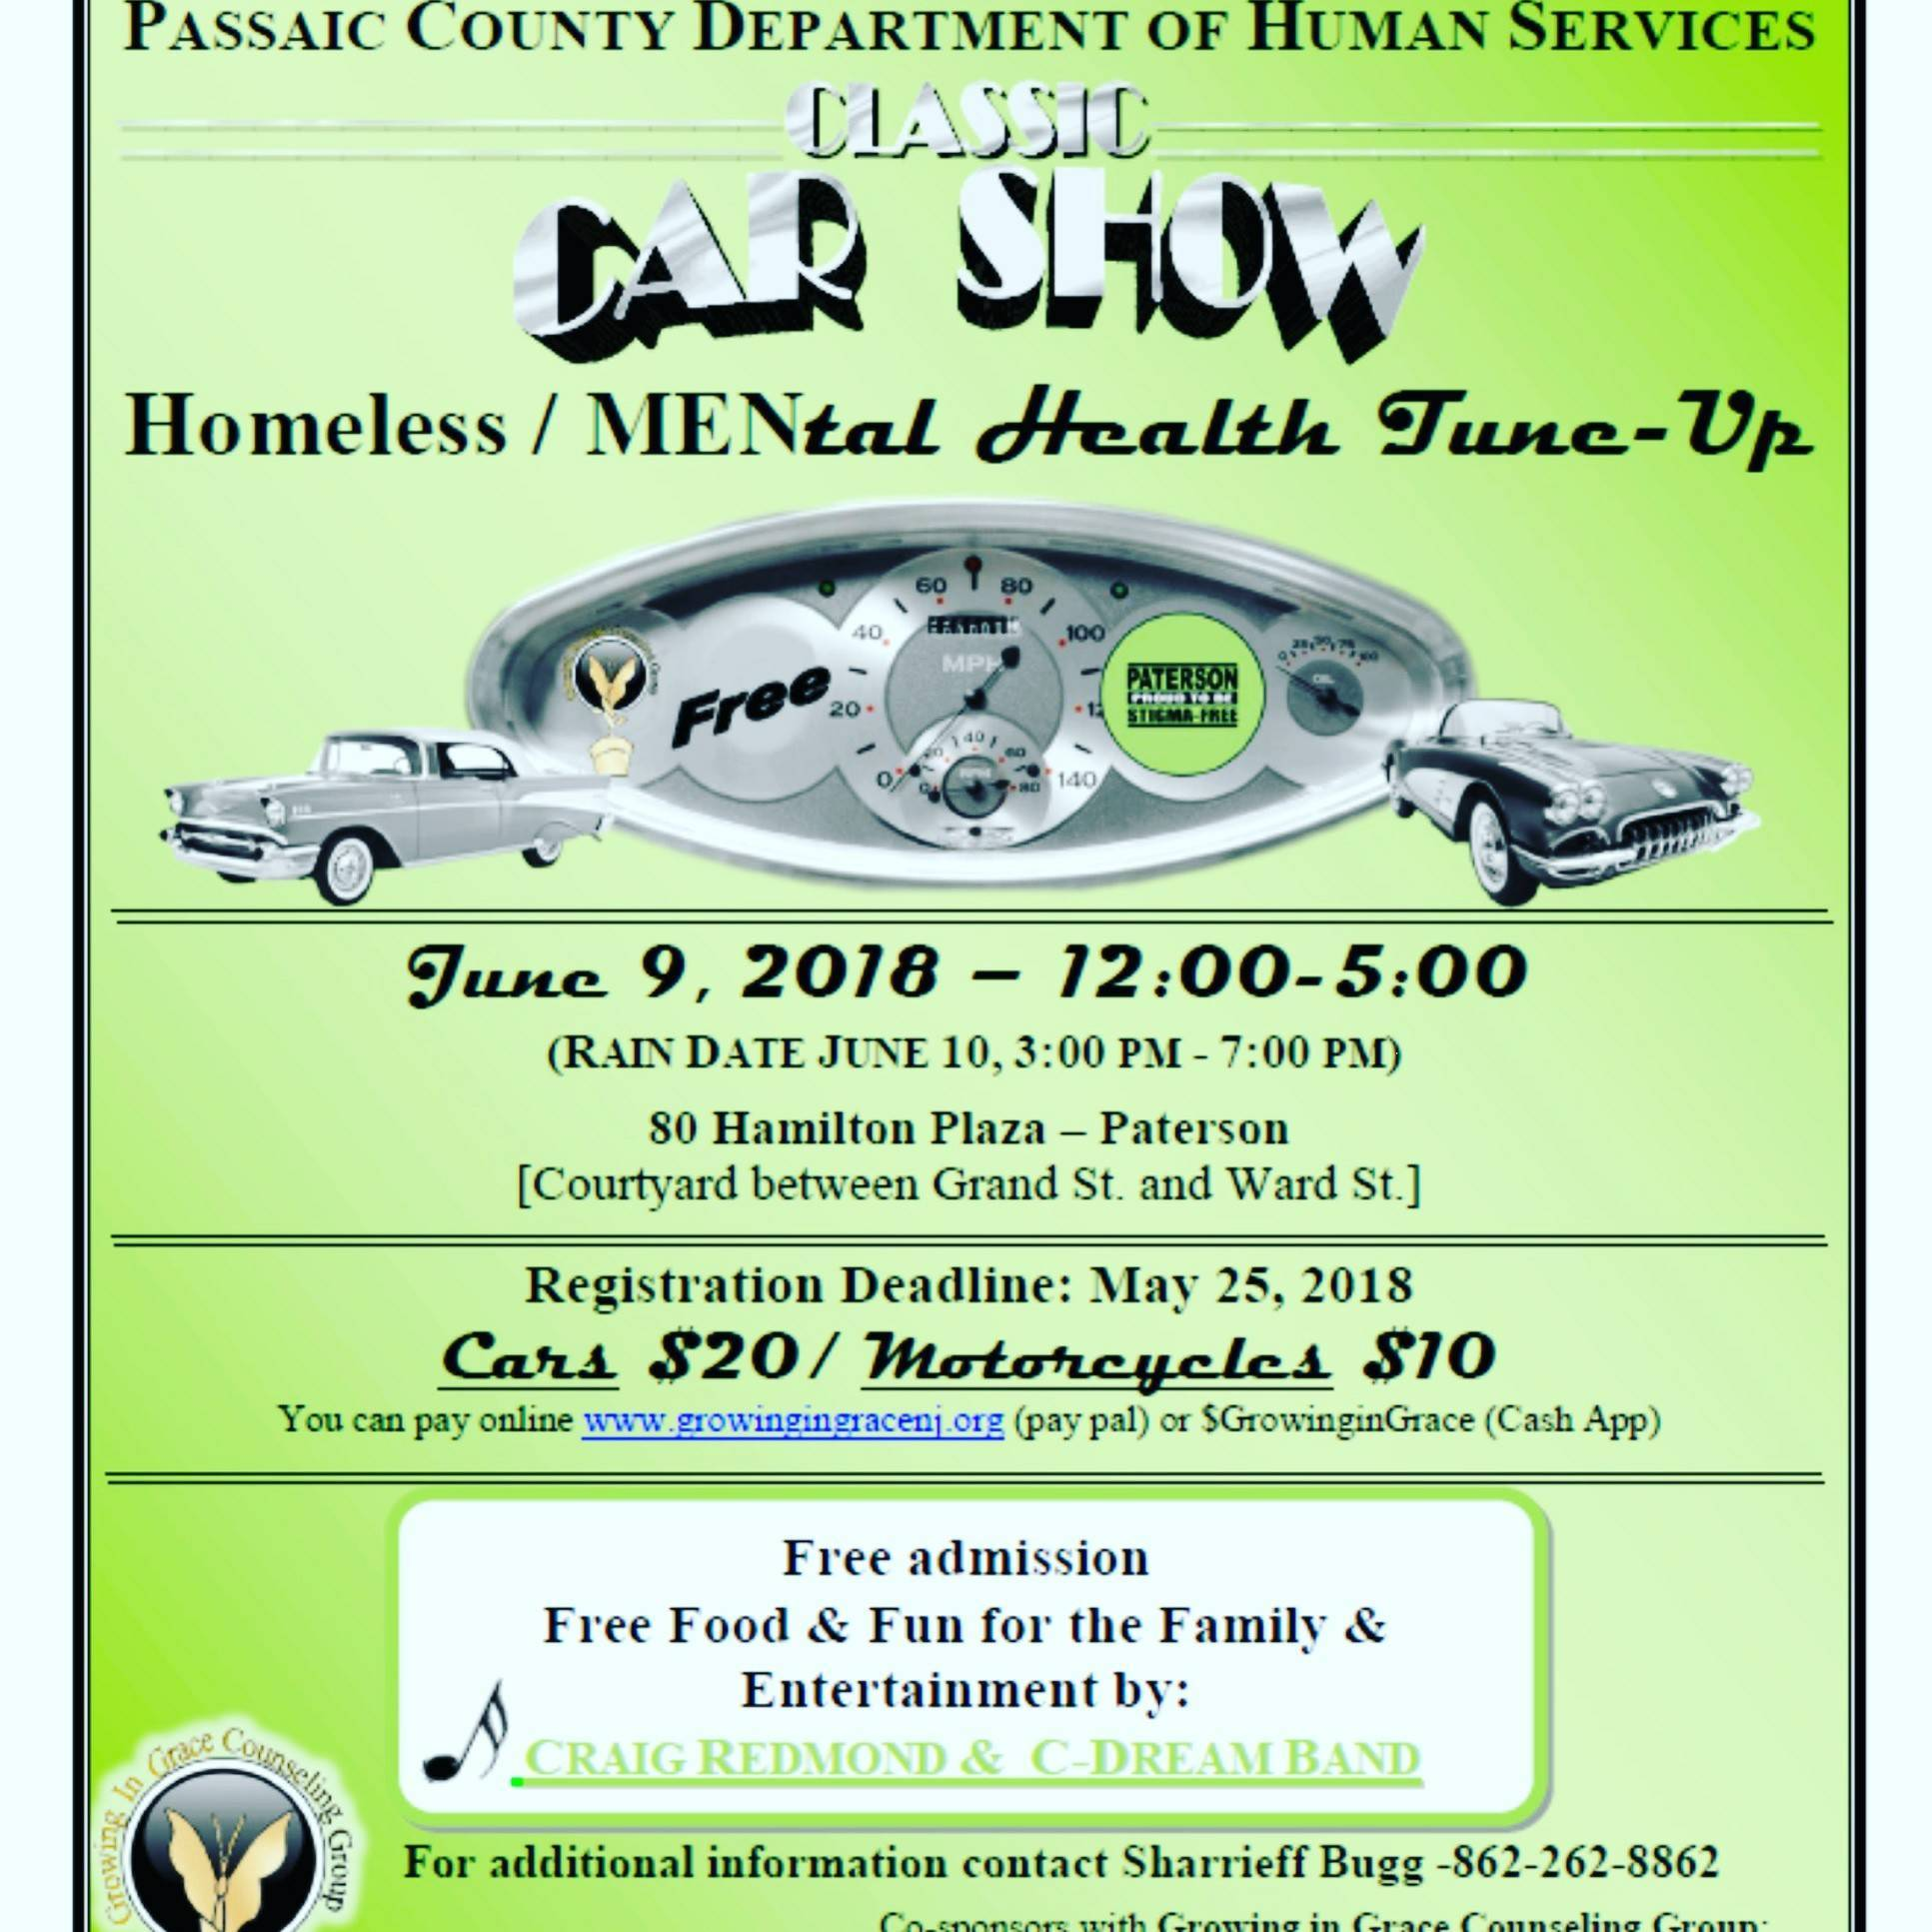 Classic Car Show Homeless Mental Health Tune Up Tapinto